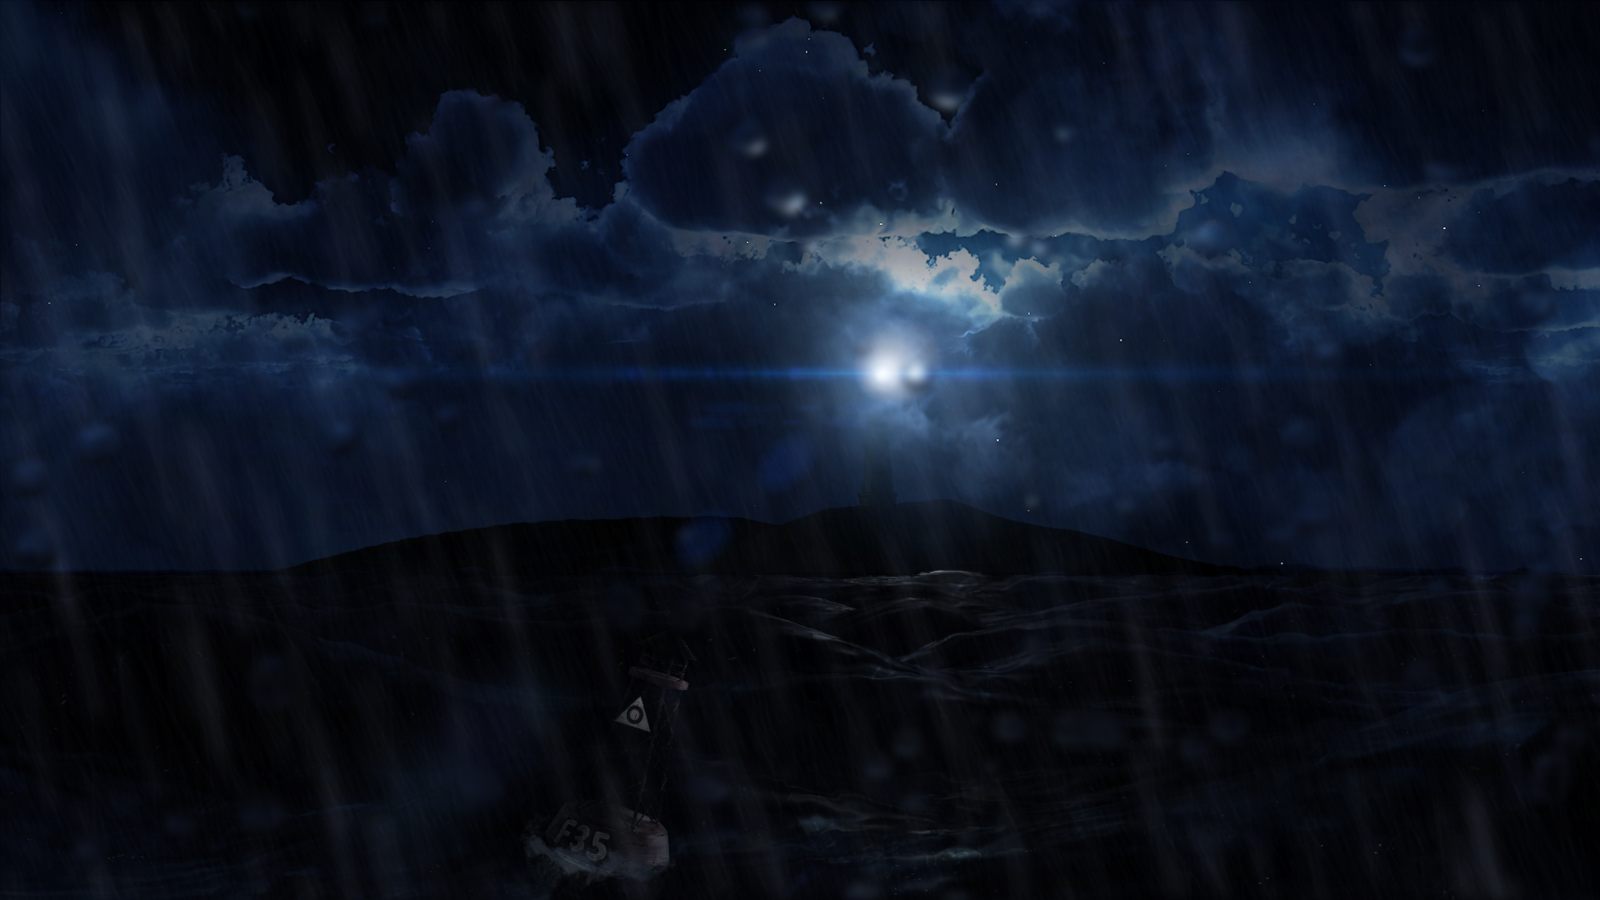 Stormy Night Wallpaper